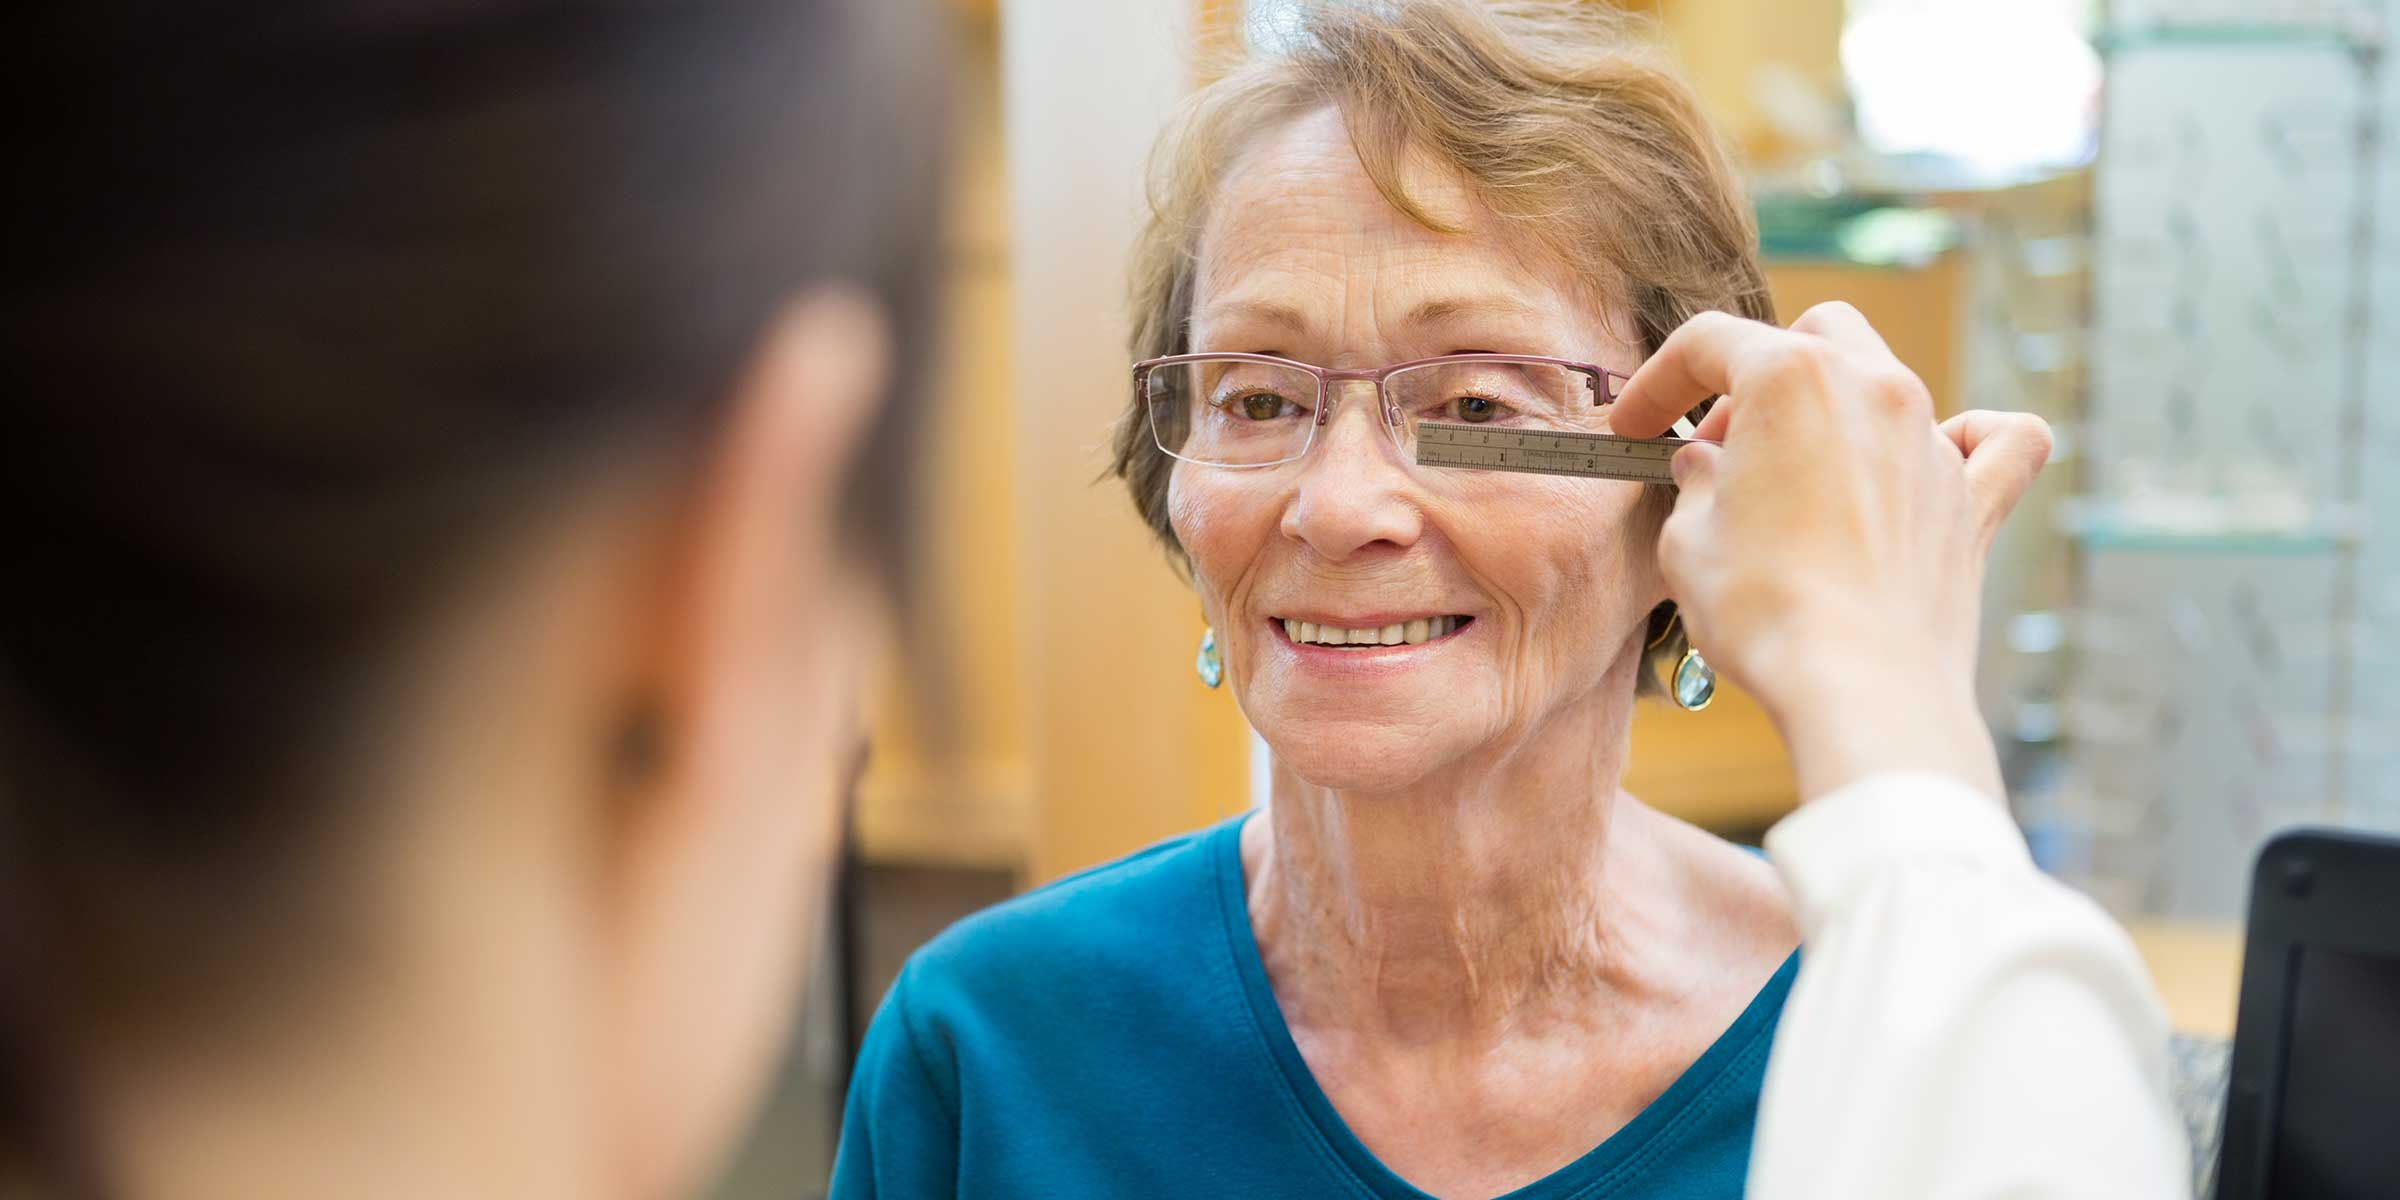 An optician measuring a woman's PD